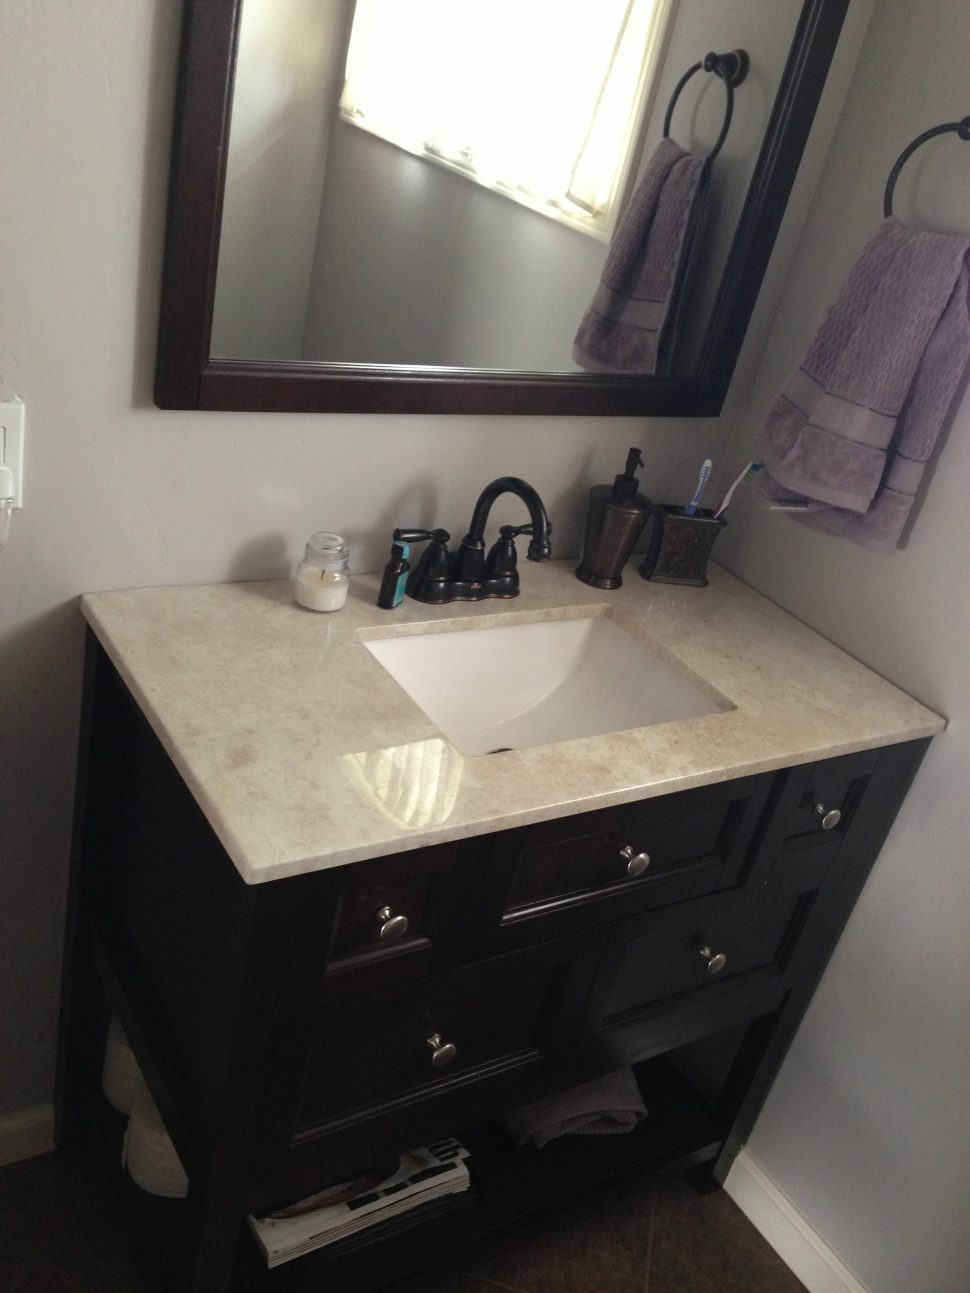 Vanity Home Depot for Bathroom Cabinets Design Ideas: Home Depot Vanity And Sink | Vanity Home Depot | Home Depot Bathroom Vanities With Tops